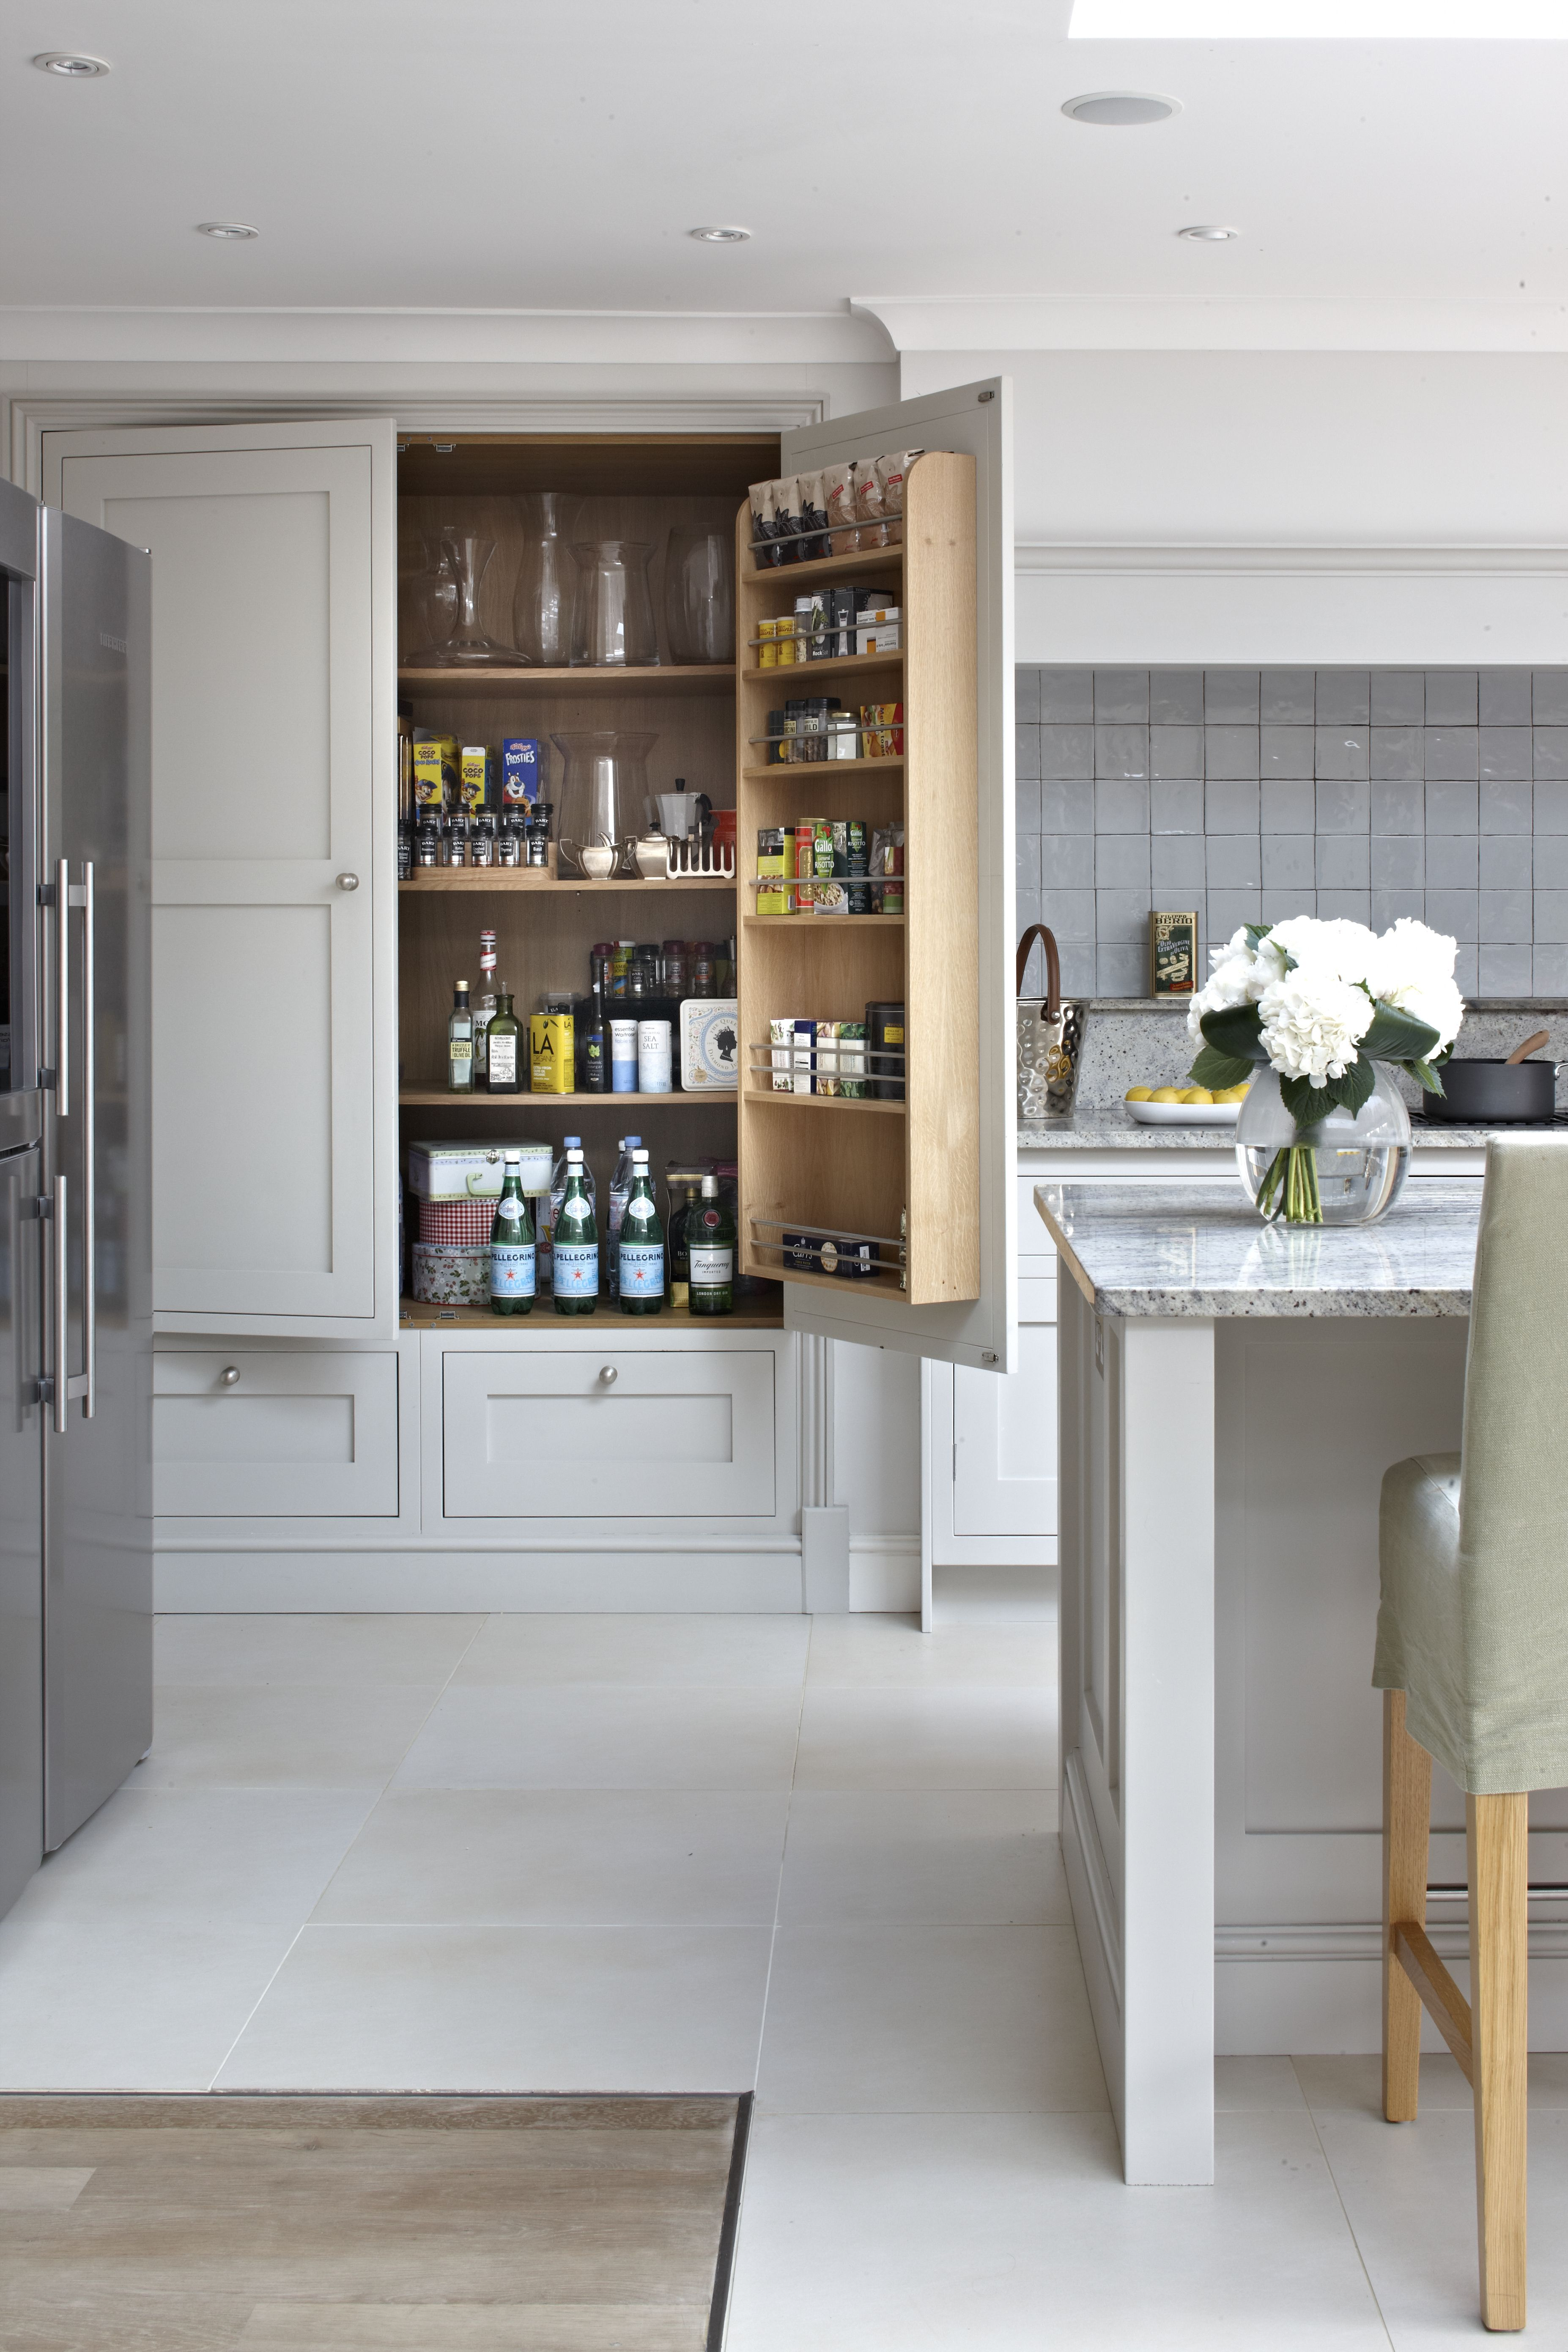 Surrey Country Kitchen Design Classic Shaker Kitchens By Brayer Stand Alone Kitchen Pantry Kitchen Pantry Design Pantry Design